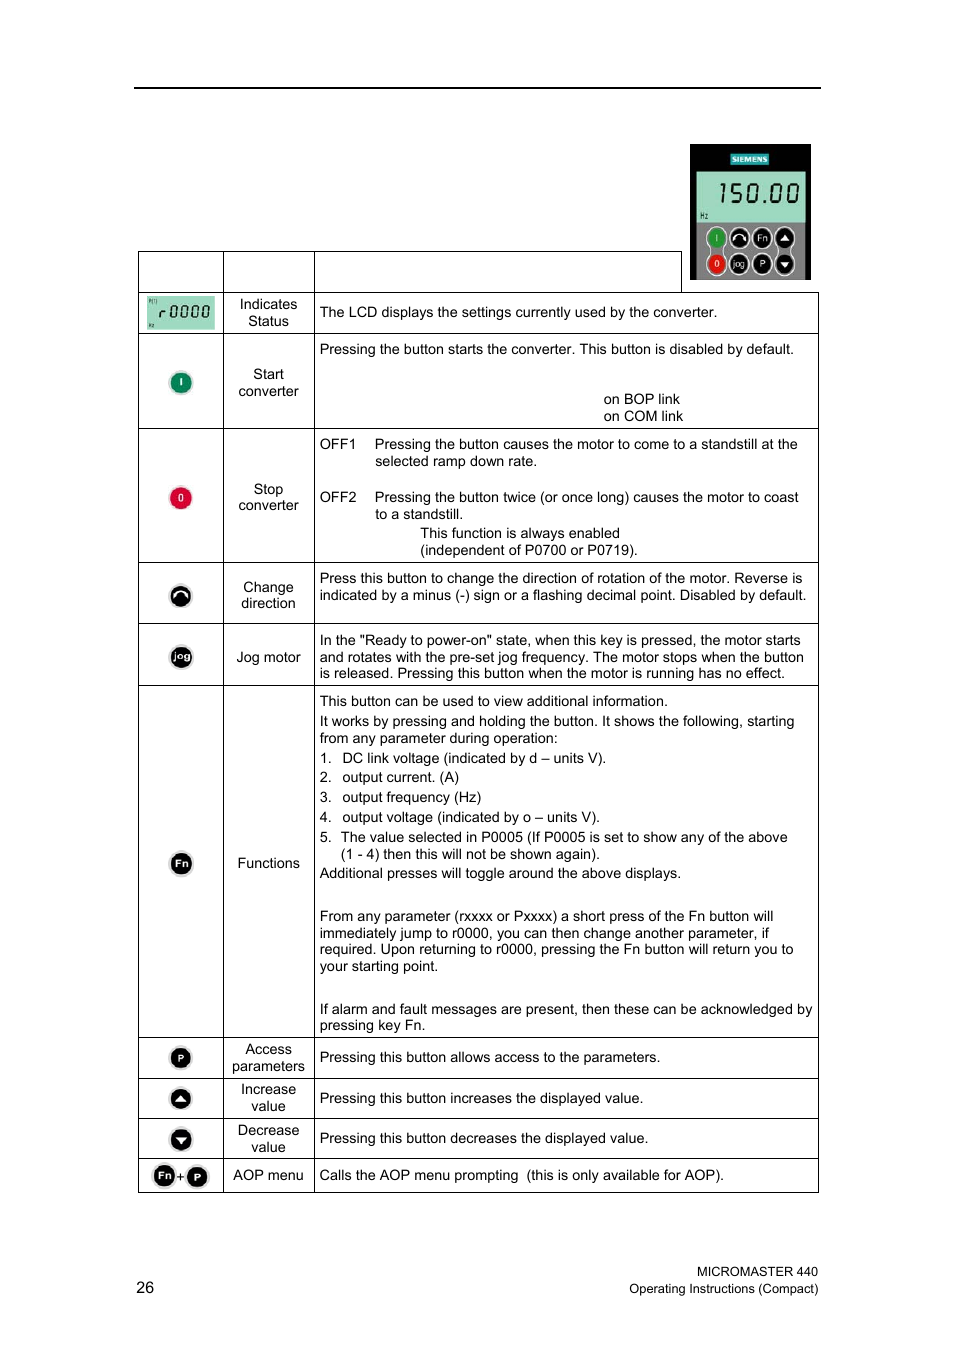 Micromaster 440 Schematic Diagram Automotive Wiring Siemens Control Bop Aop Option 1 Buttons And Their Functions Rh Manualsdir Com Micro Master User Manual